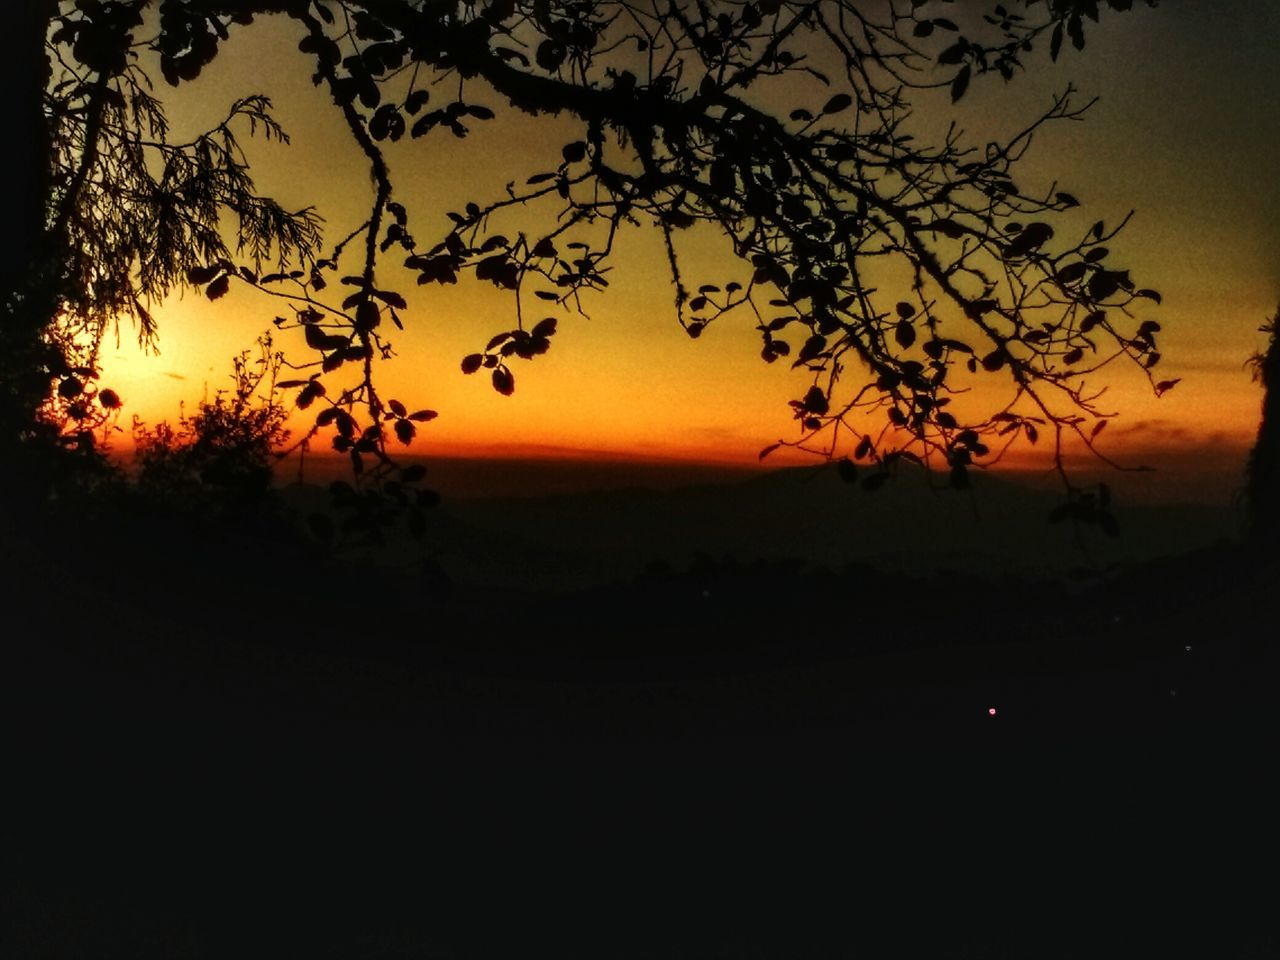 sunset, nature, silhouette, landscape, tree, sky, beauty in nature, scenics, tranquility, no people, outdoors, scenery